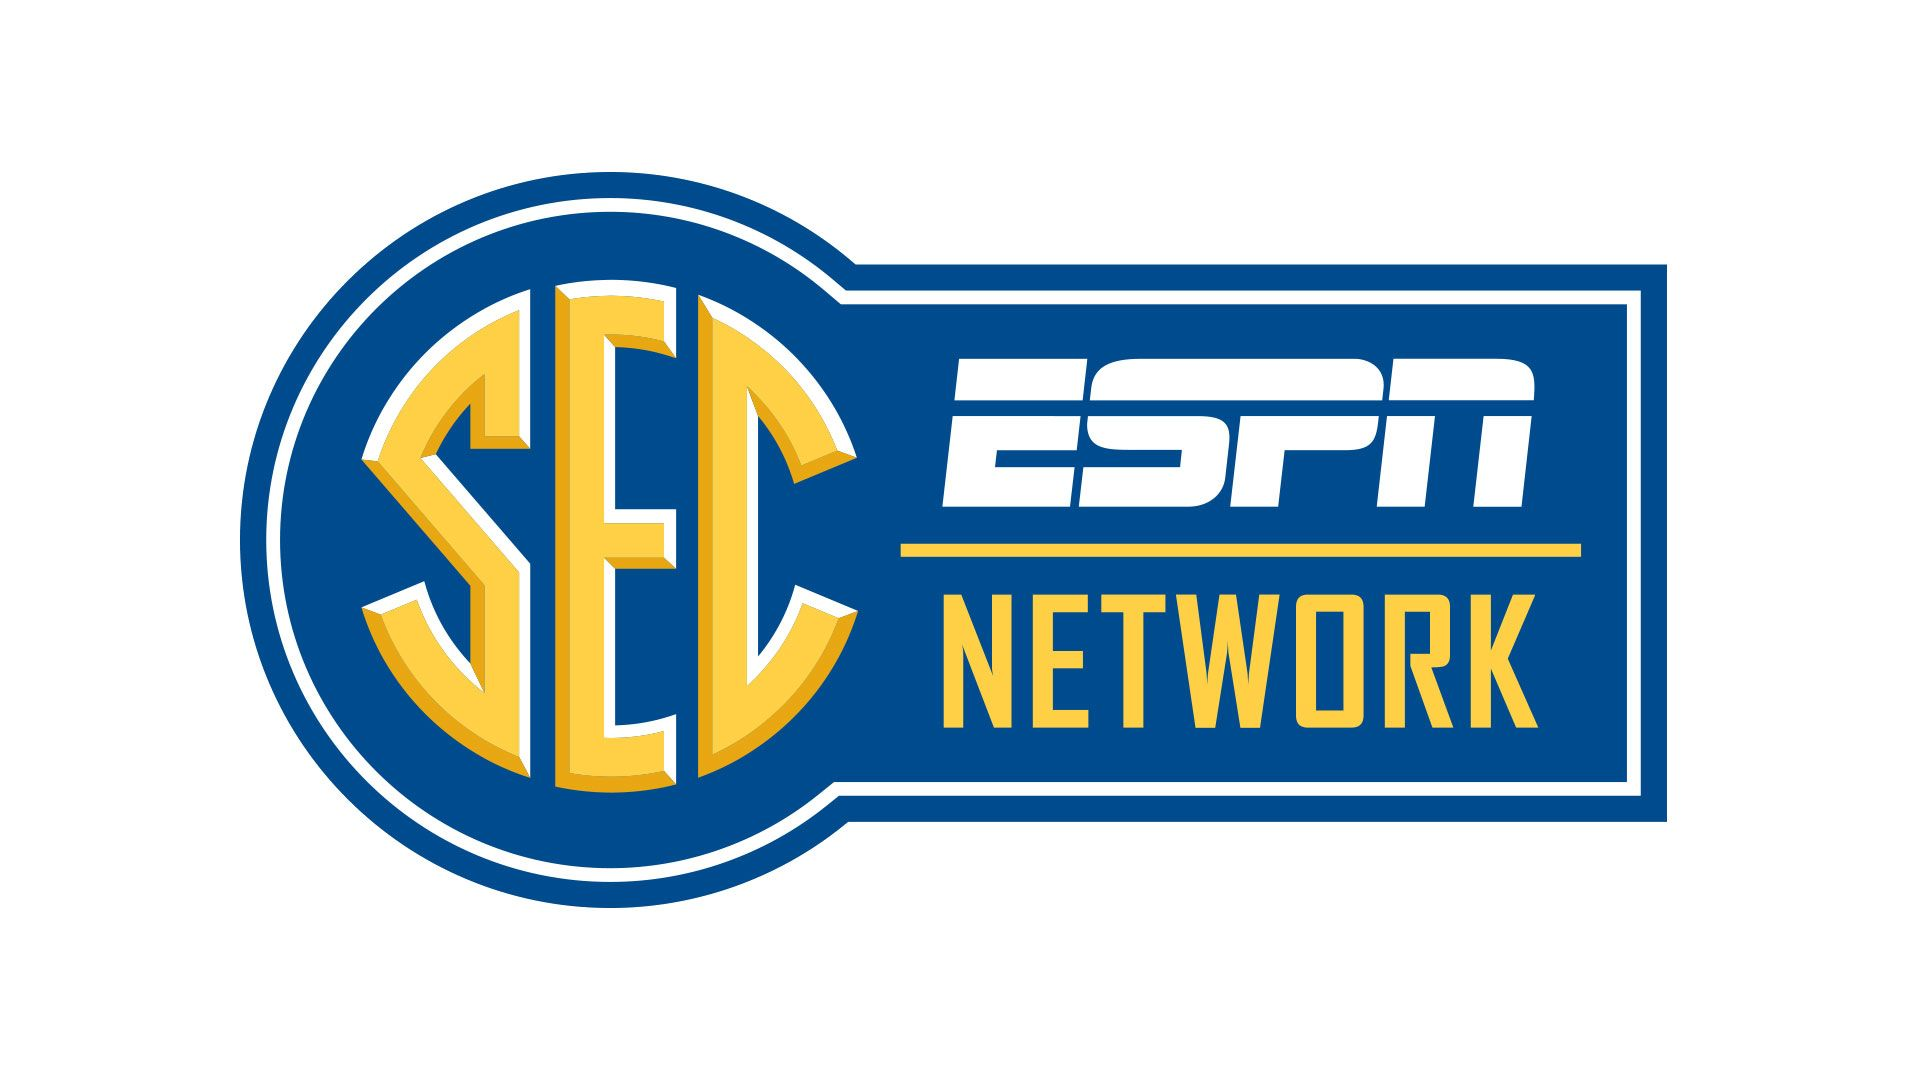 Verizon fios nfl network channel number - Report Verizon Will Carry Sec Network As Part Of Fios Tv Package